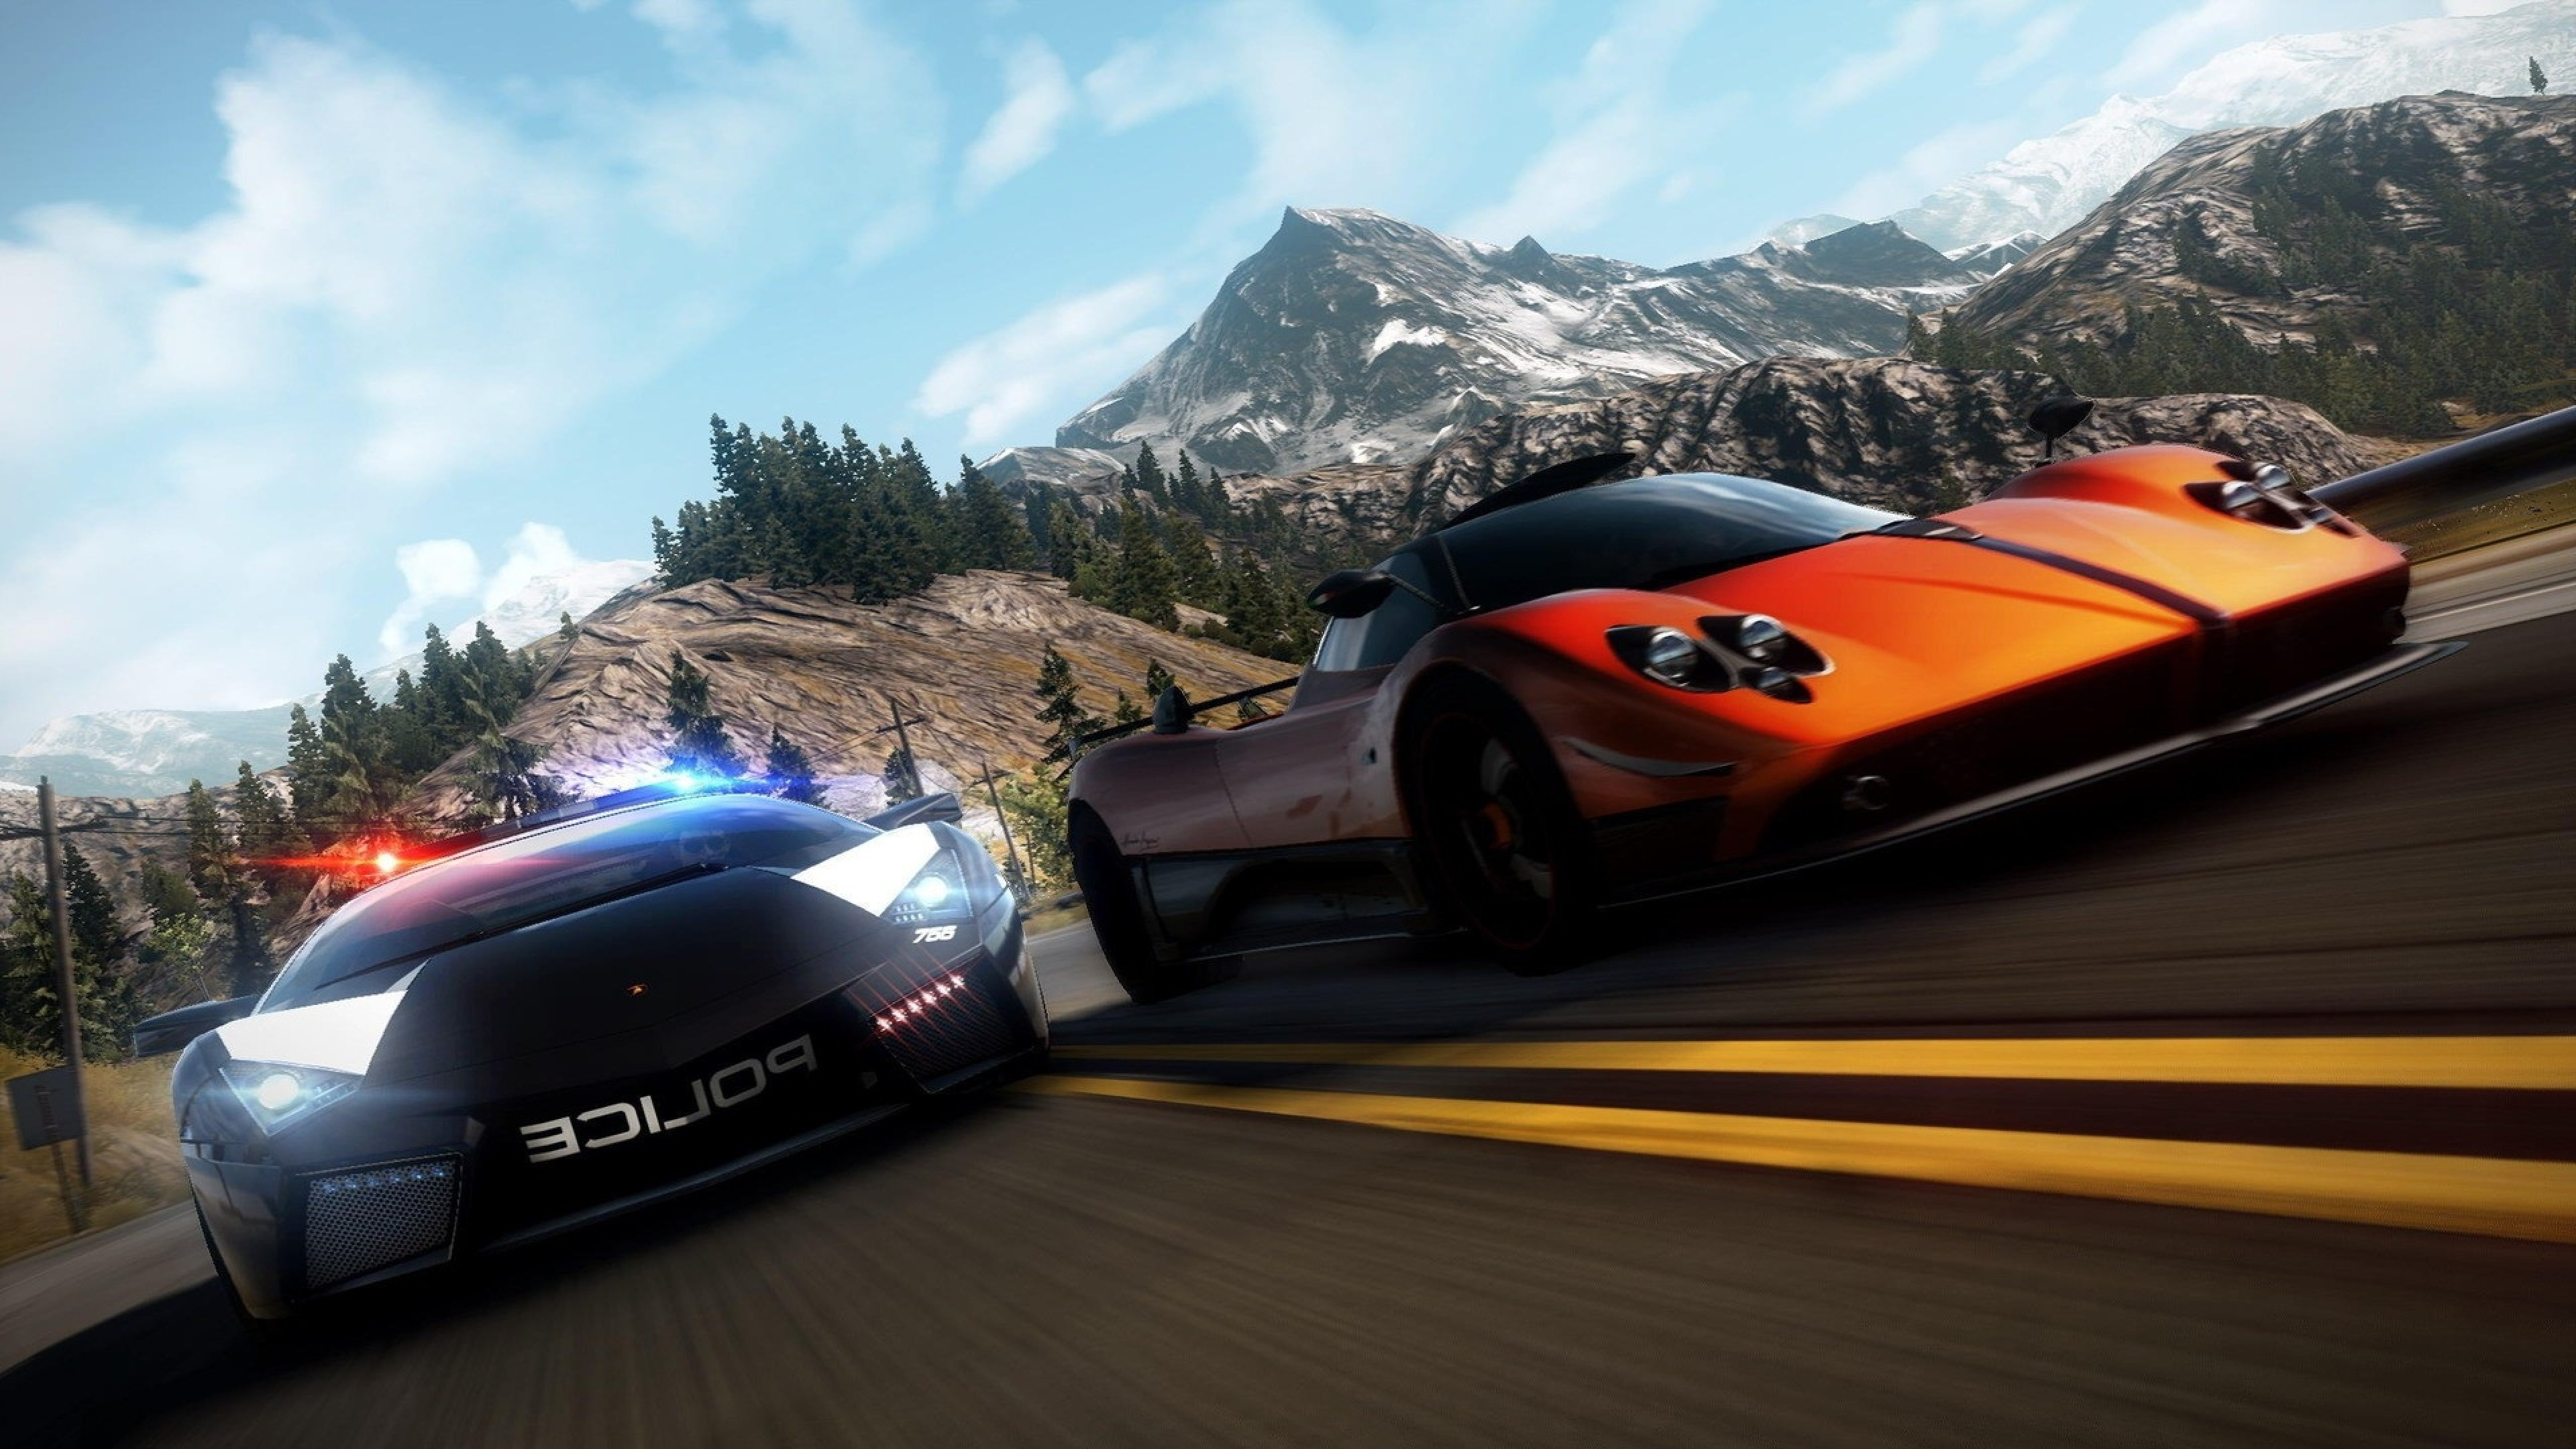 3840x2160 Preview wallpaper nfs, need for speed, police, road, mountain, sky